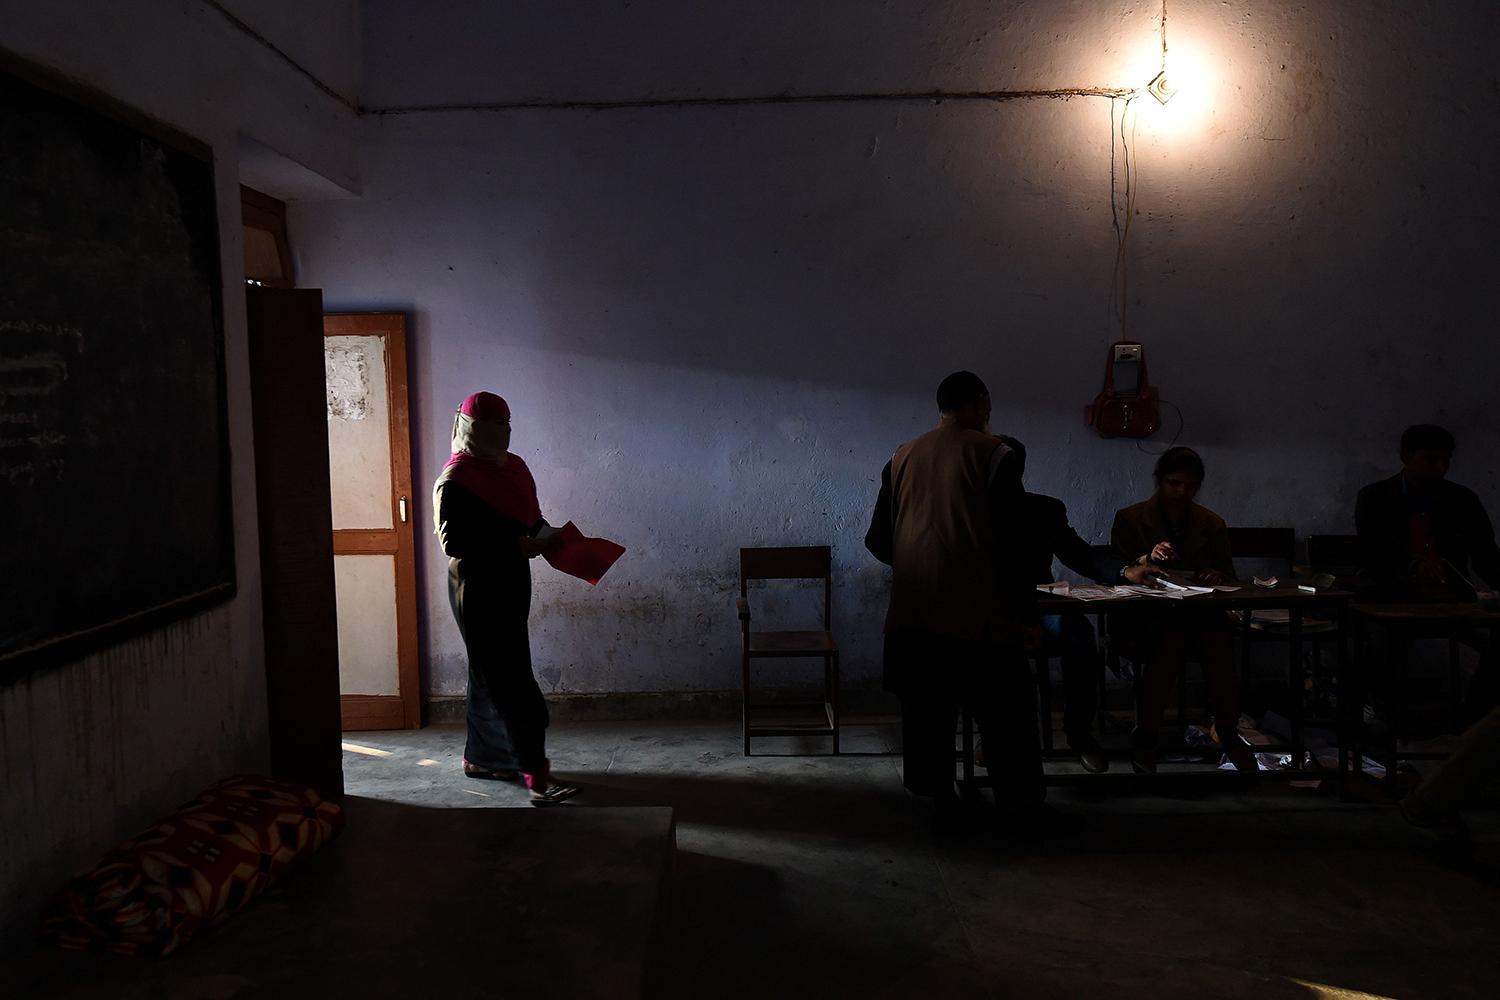 TOPSHOT - A Muslim woman arrives to cast her vote at a polling station in Muzaffarnagar in Uttar Pradesh on on February 11, 2017. India's most populous state Uttar Pradesh goes to the polls on February 11 in a contest seen as a key test for Narendra Modi halfway into his first term as prime minister. / AFP PHOTO / Prakash SINGH / TT / kod 444